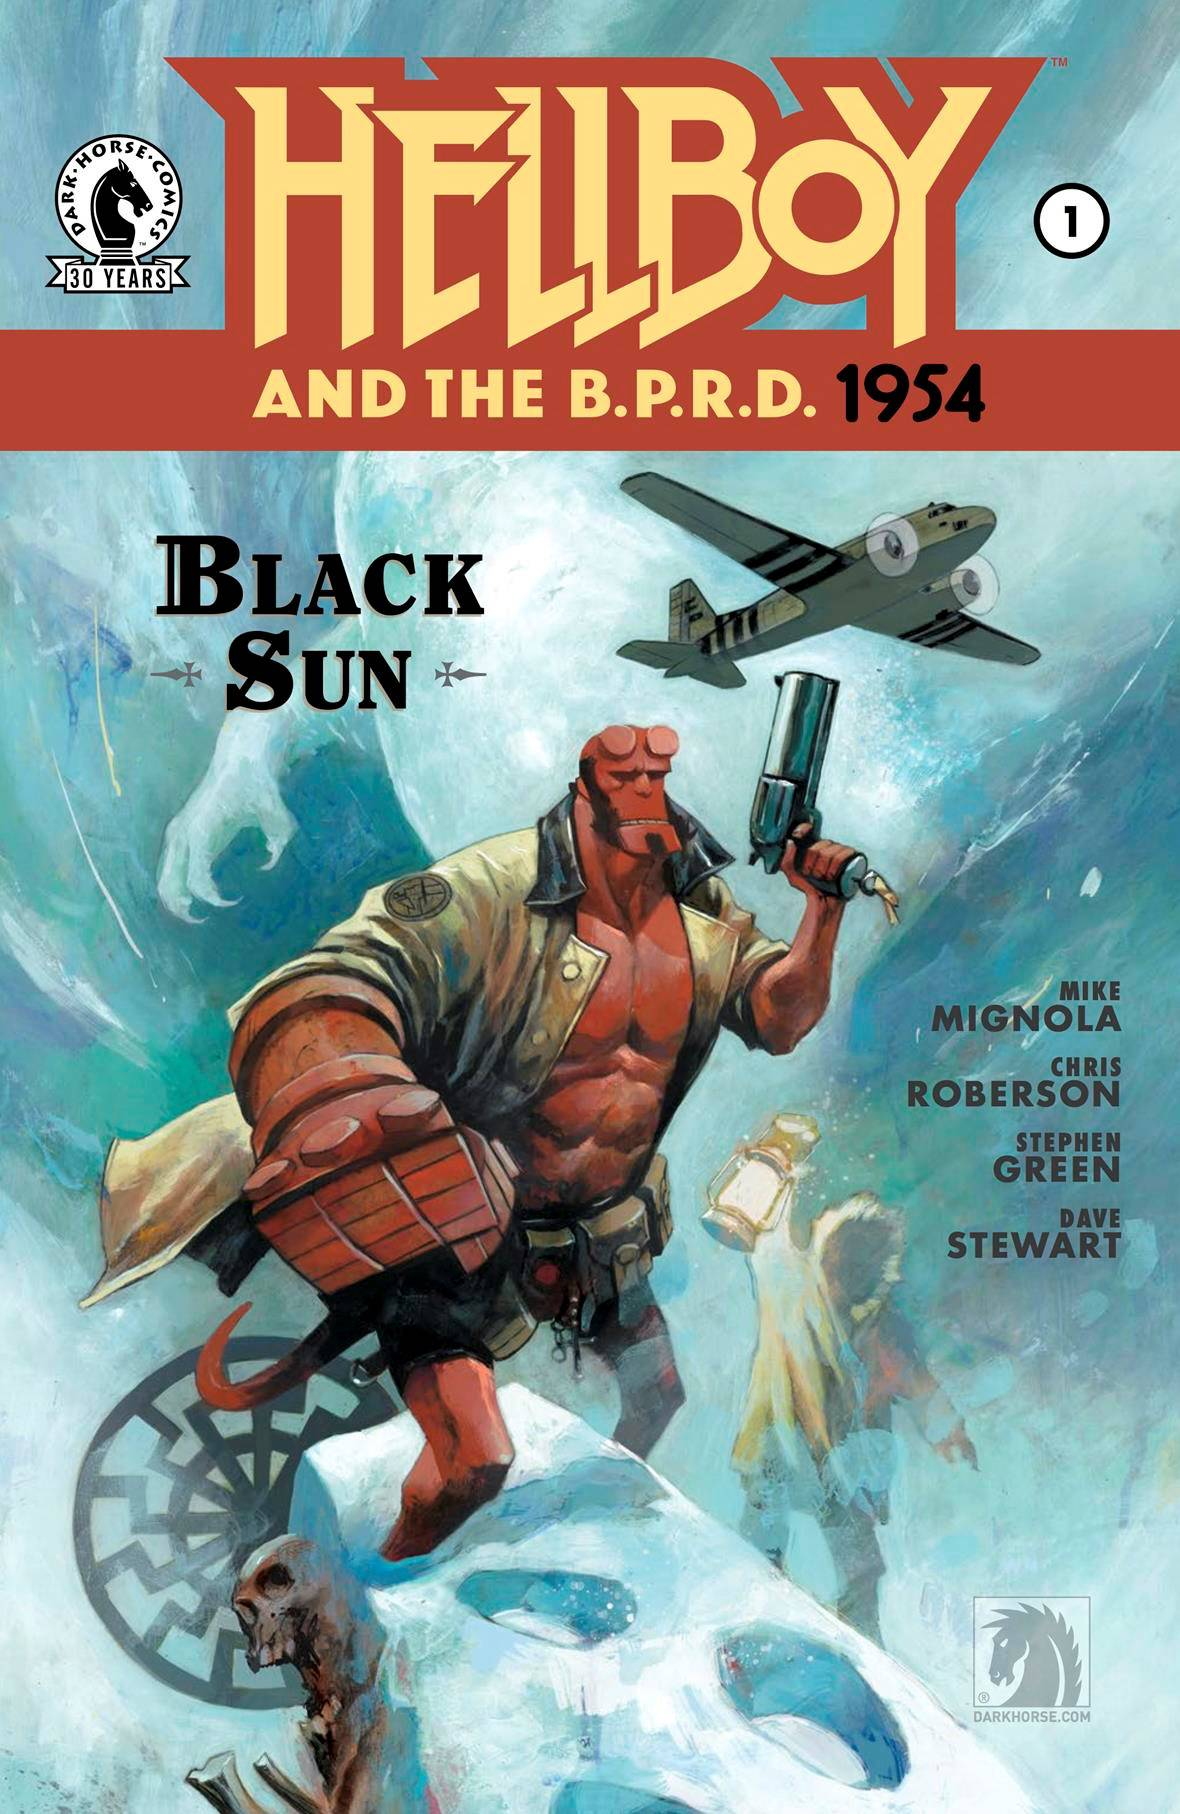 HELLBOY & BPRD 1954 BLACK SUN (MS 2)